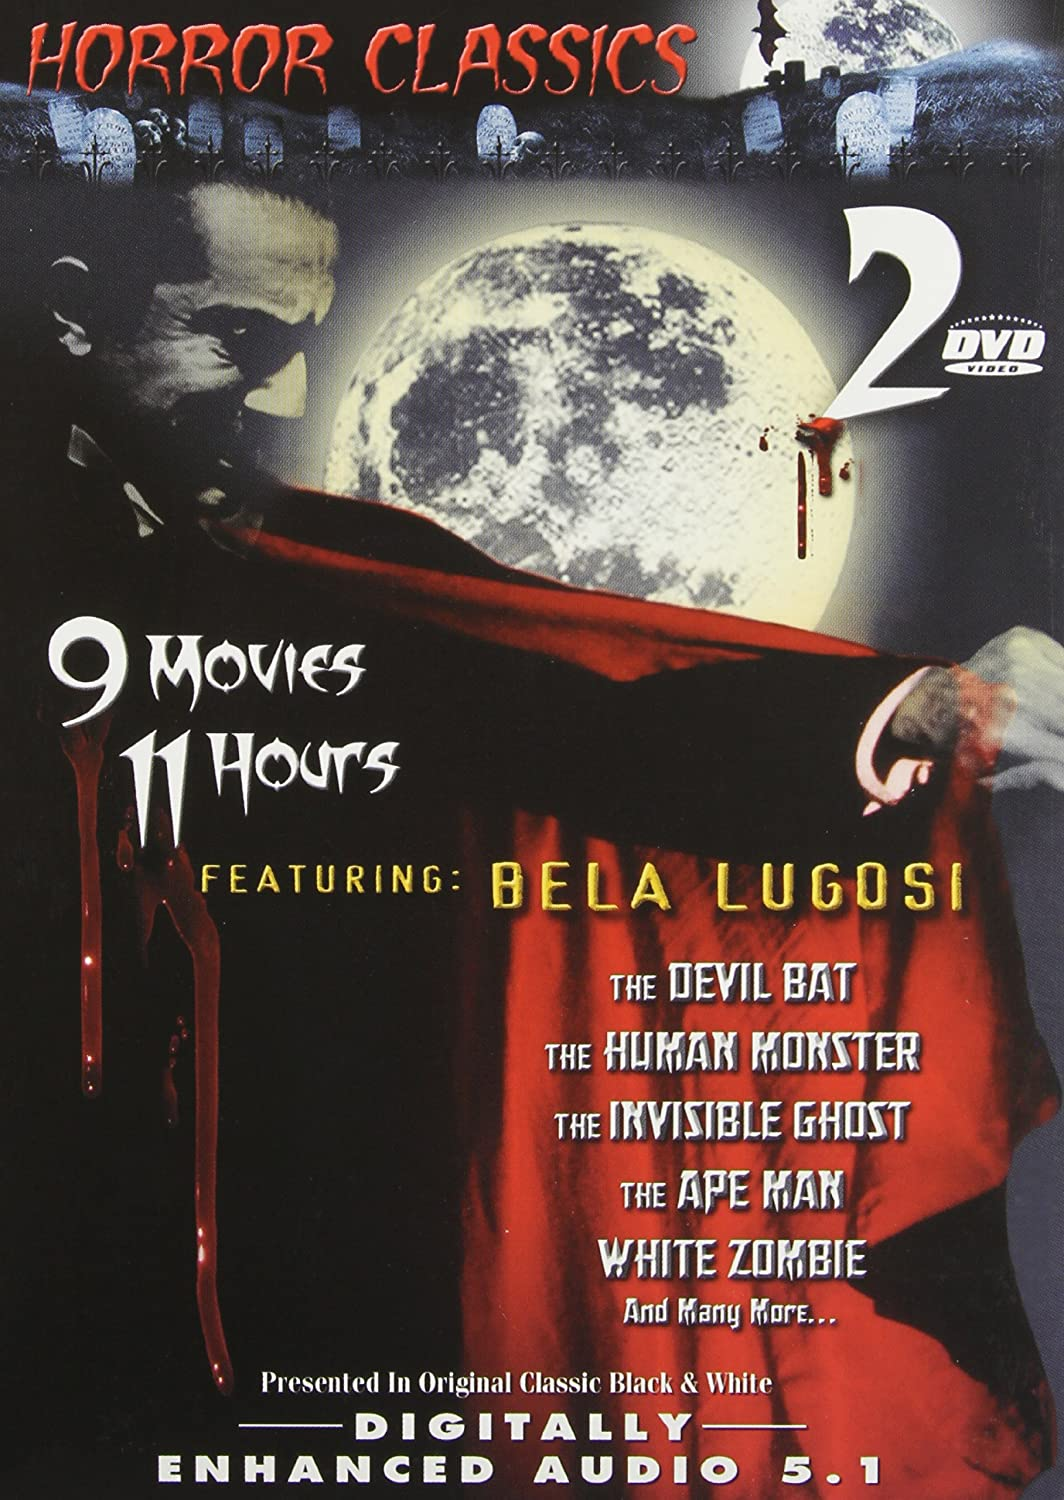 Great Horror Classics, Vol. 1: The Gorilla / The Devil Bat / The Human Monster / The Invisible Ghost / The Ape Man / Carnival of Souls / Chamber of Horrors / Last Man on Earth / White Zombie